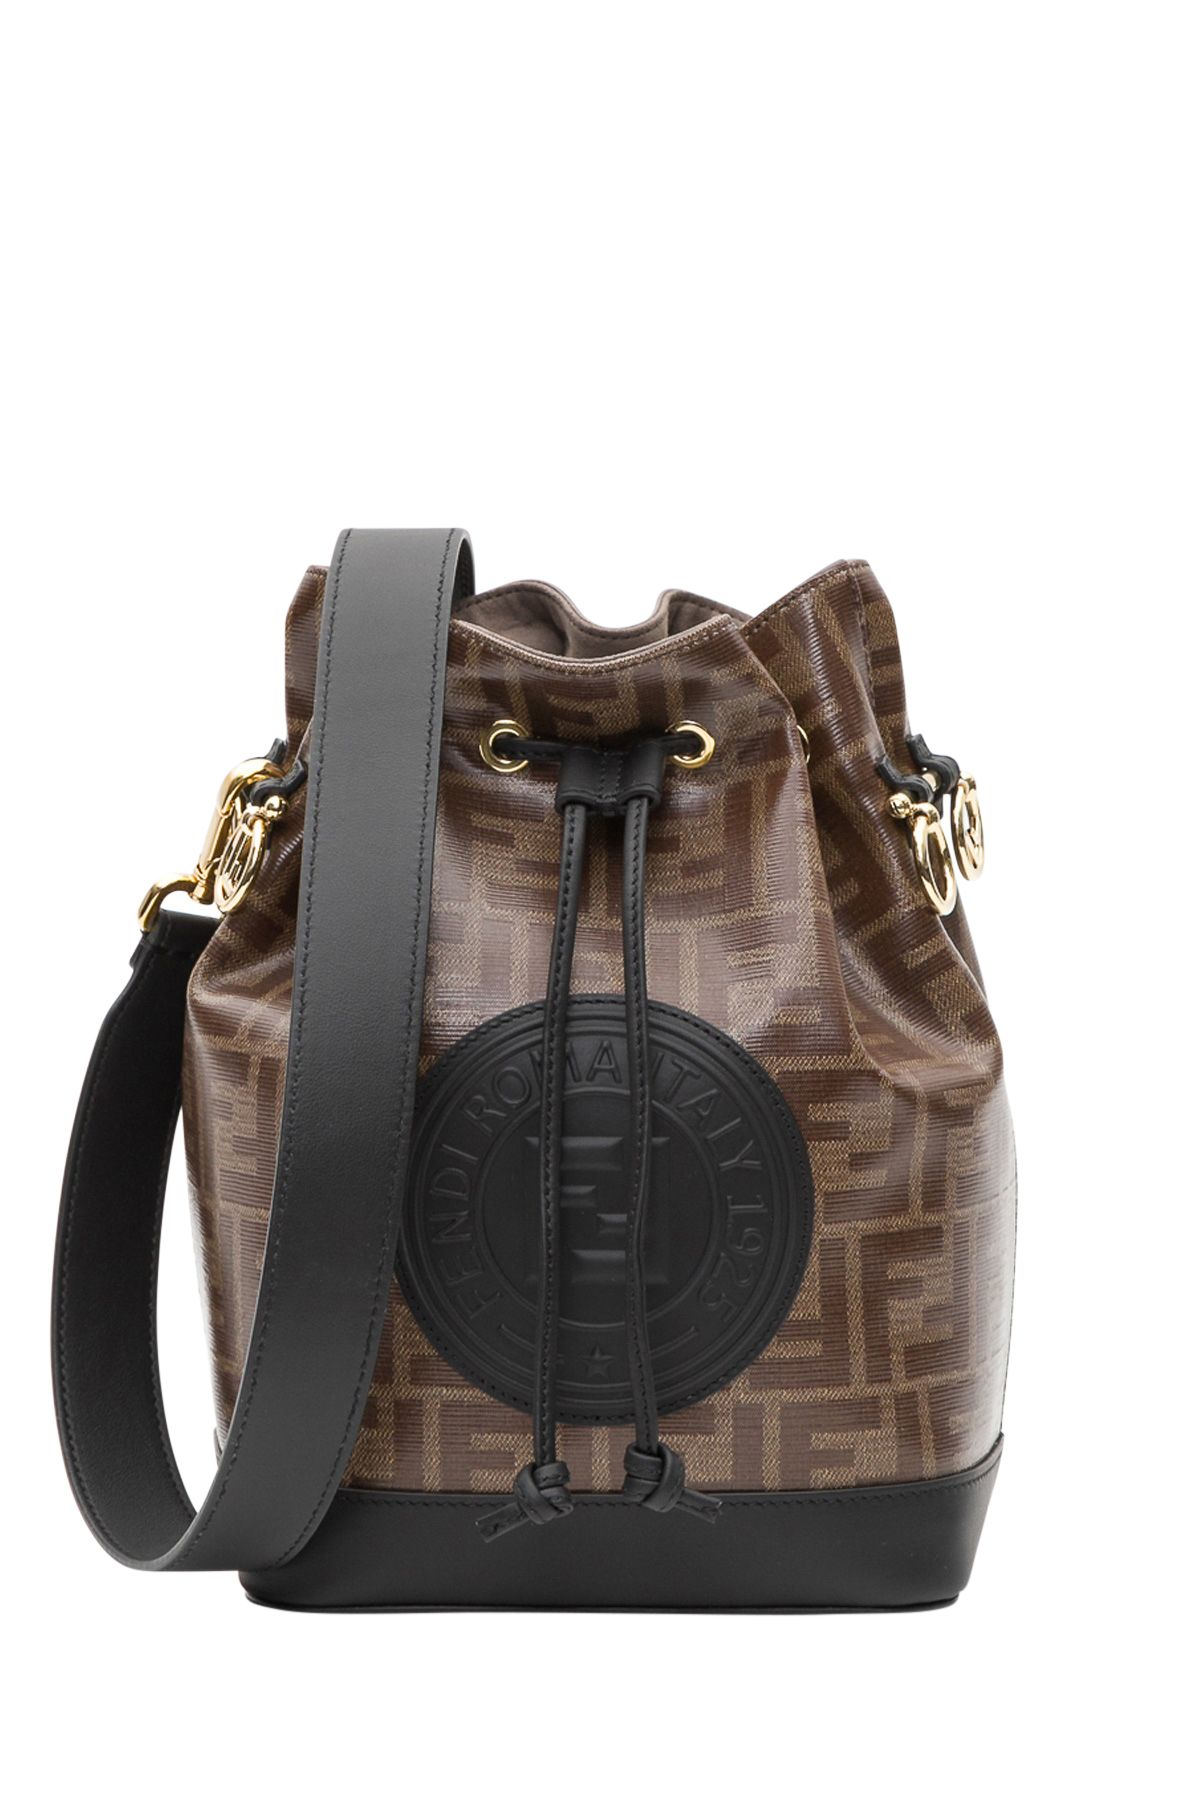 05a3acd33bcc Fendi Fendi Mon Tresor Bucket Bag - Marrone - 10804291